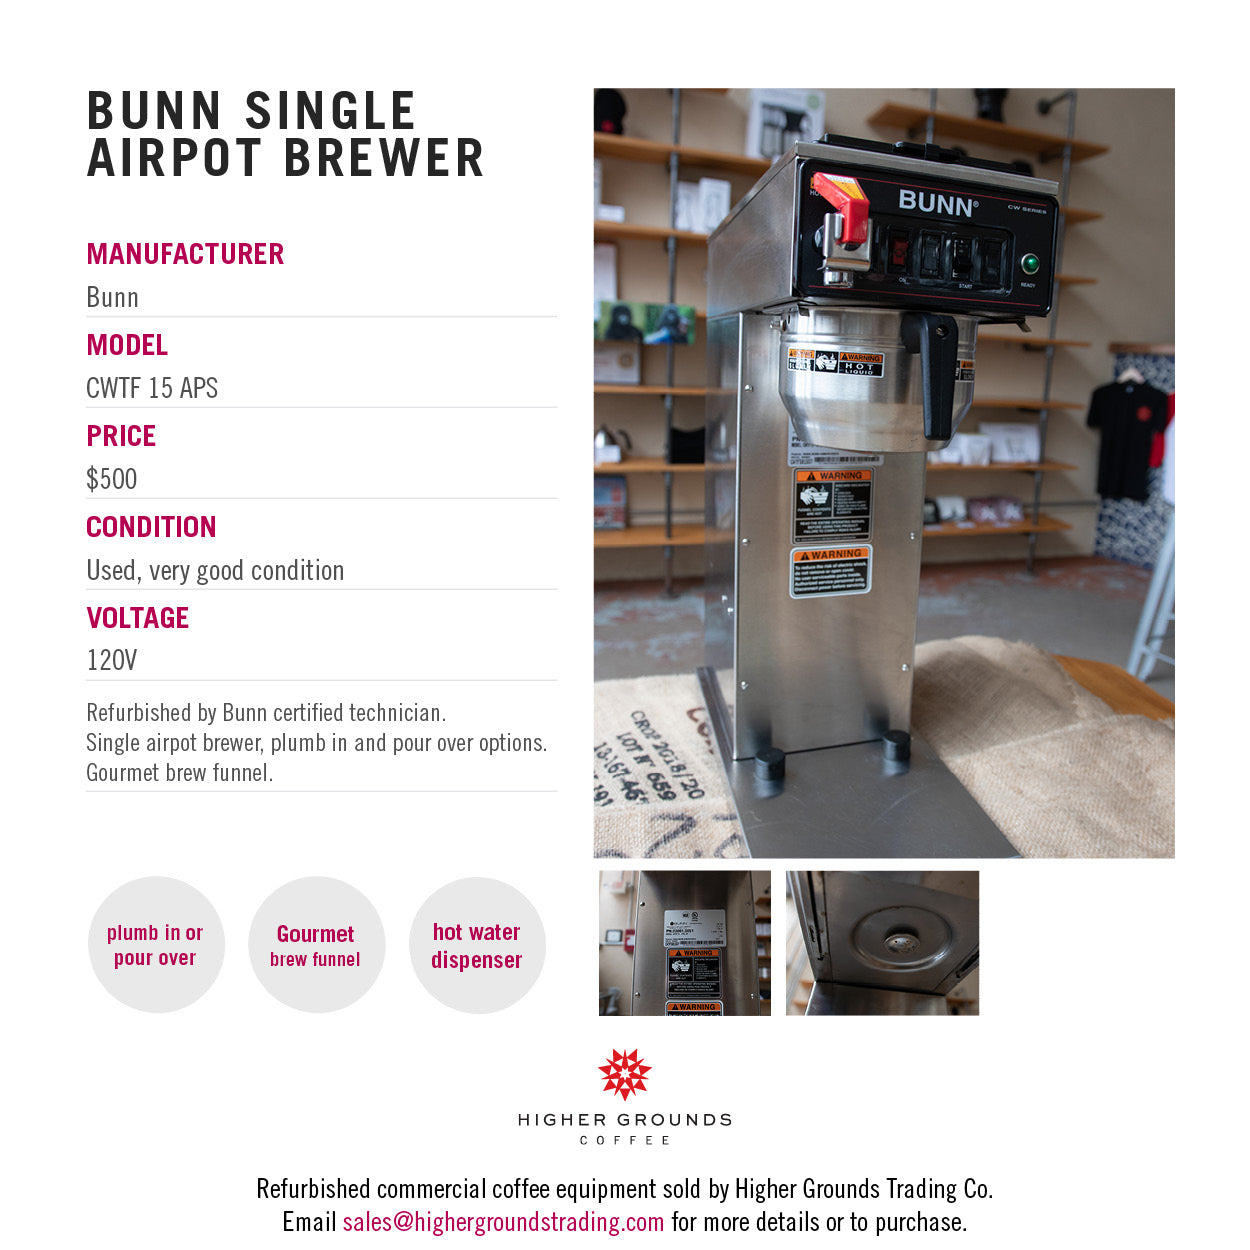 Bunn CTWF single airpot coffee for sale from Higher Grounds Coffee